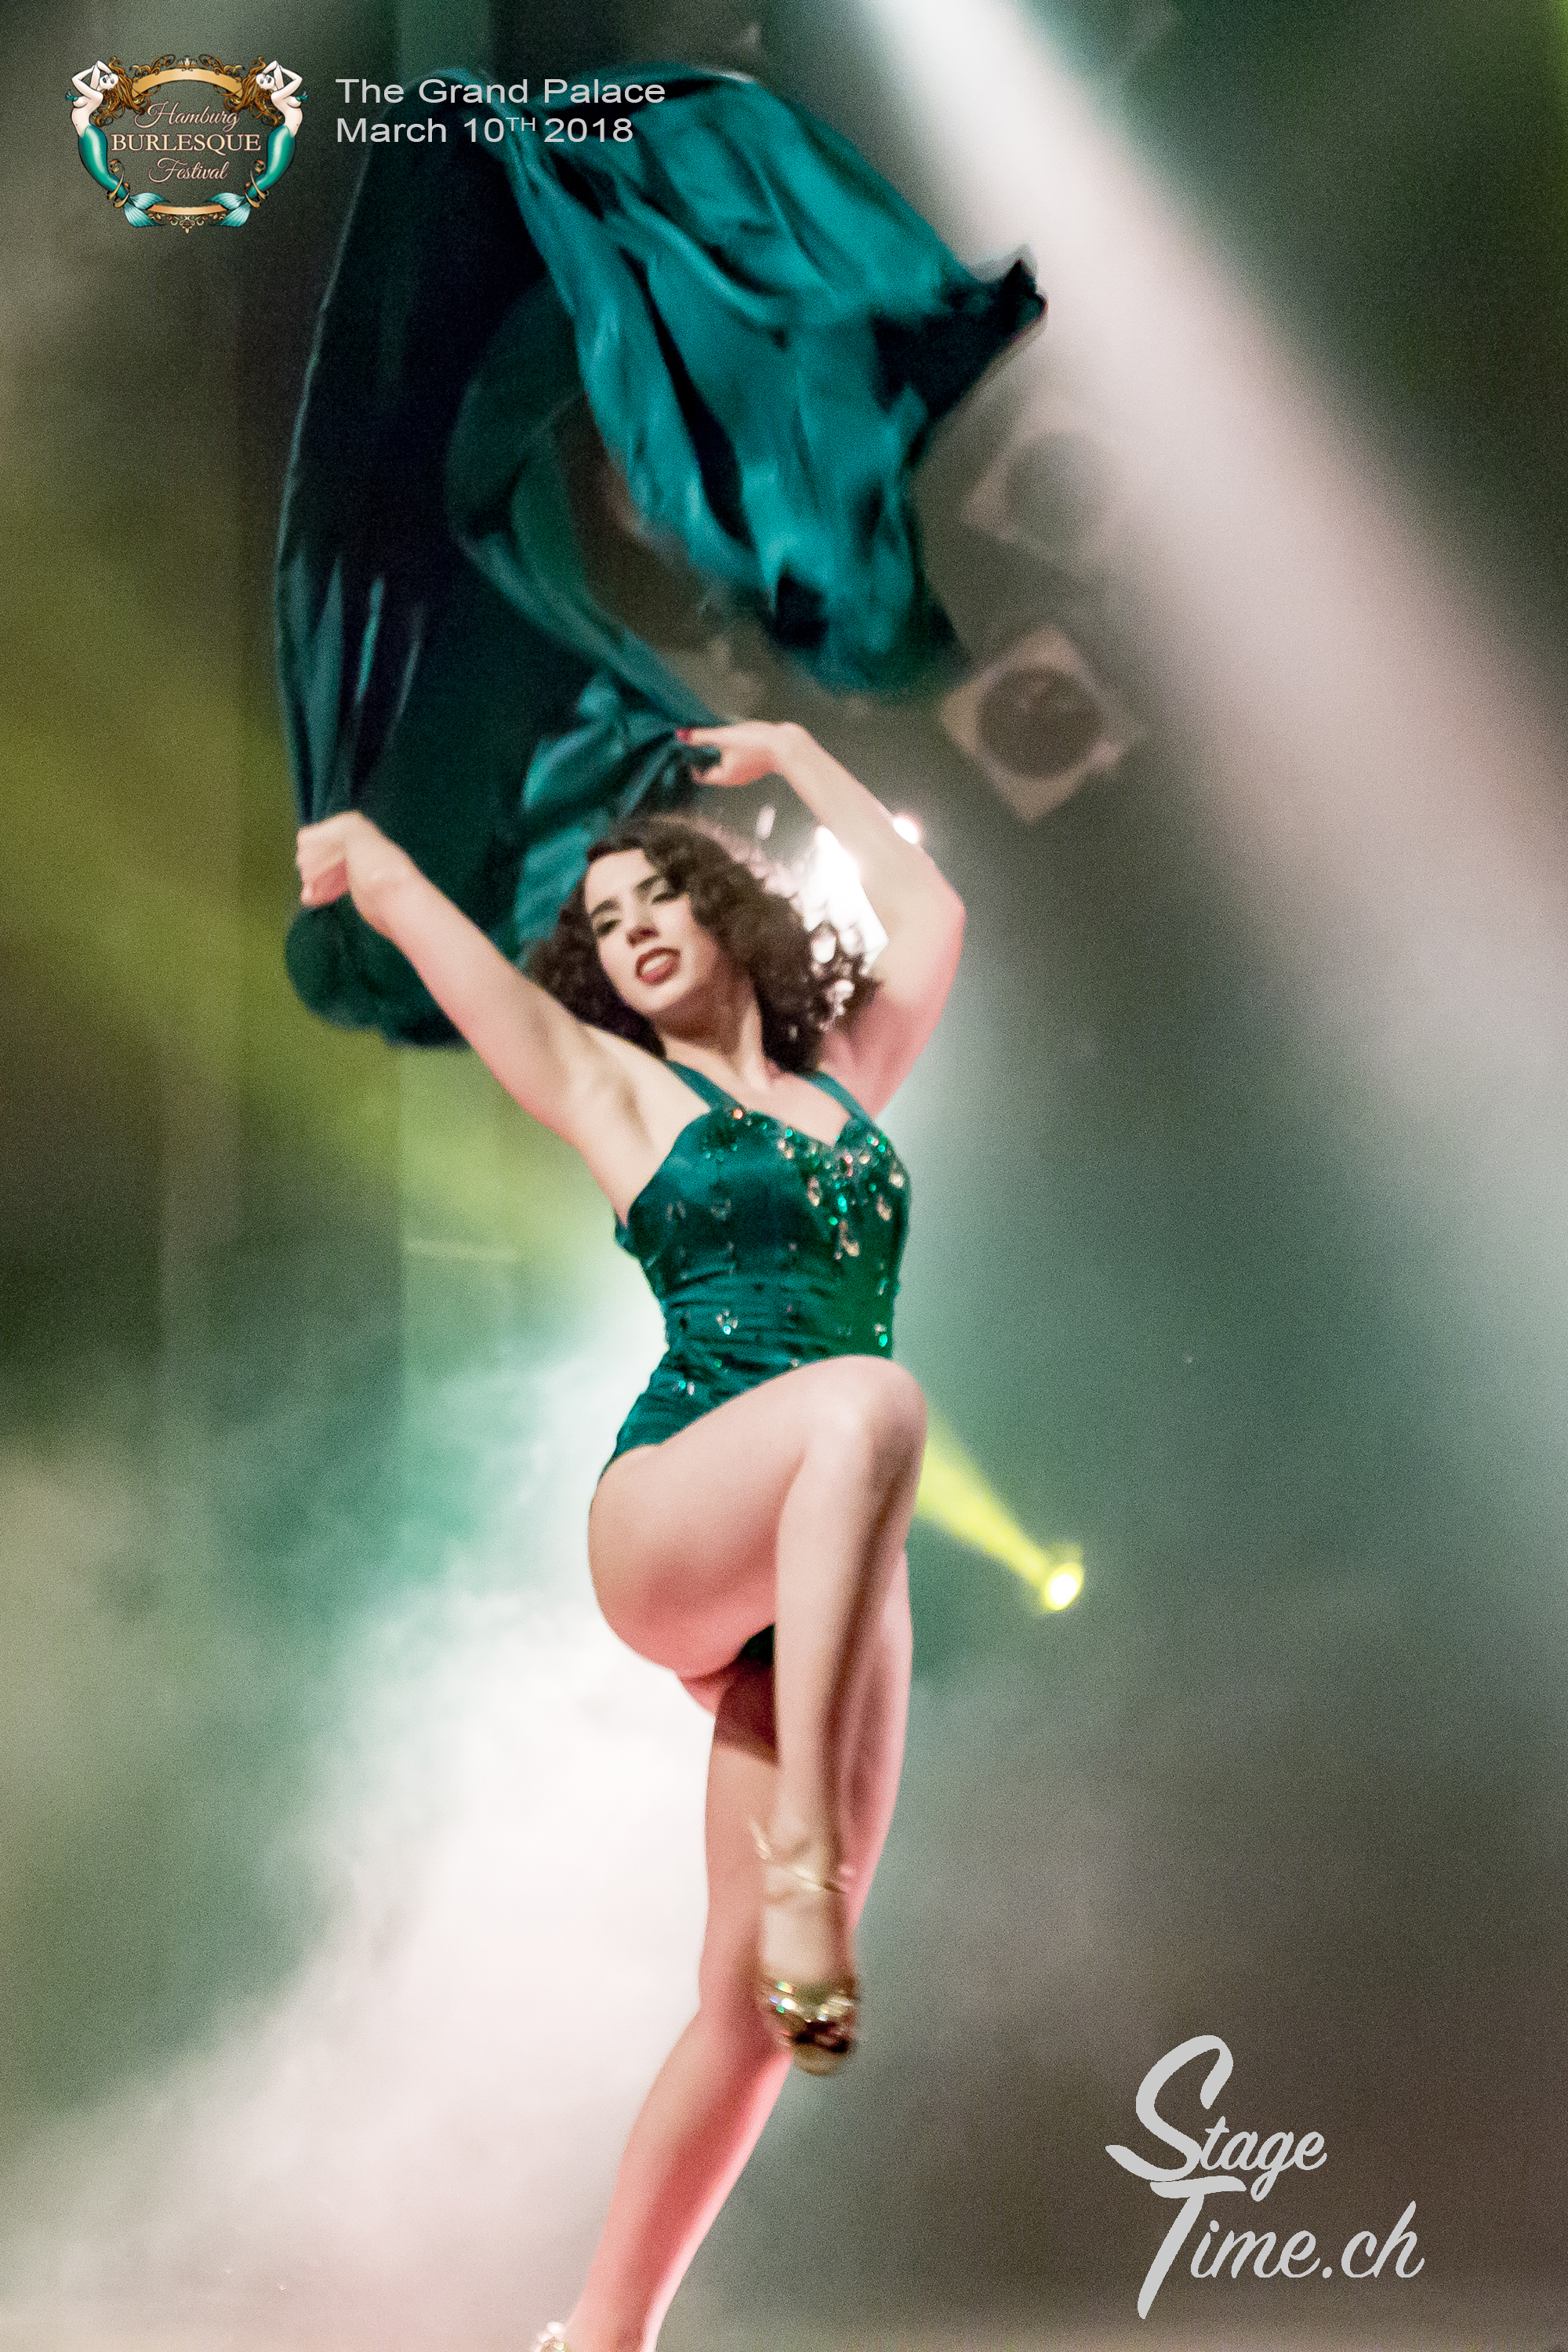 Hamburg_Burlesque_Festival_The_Grand_Palace__📷_Christoph_Gurtner_I_stagetime.ch-86